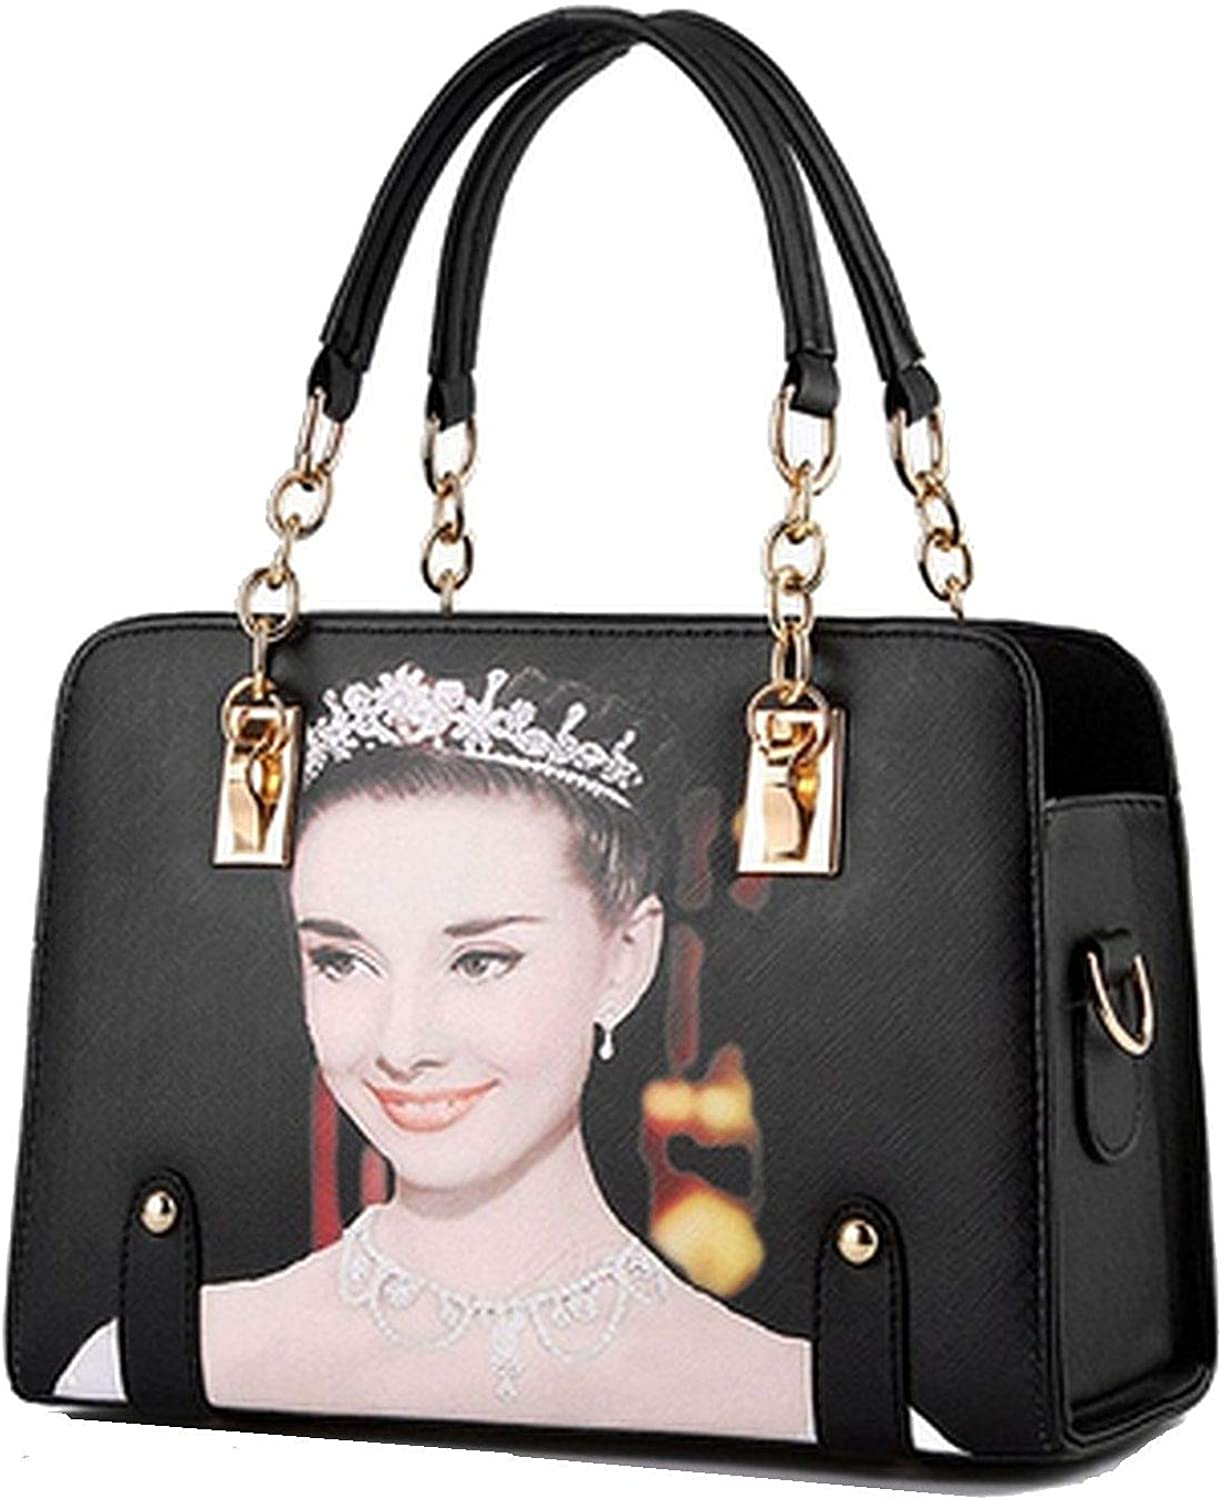 Audrey Hepburn on a Handbag, Purse with Leather and Chain Handles (and Feet)